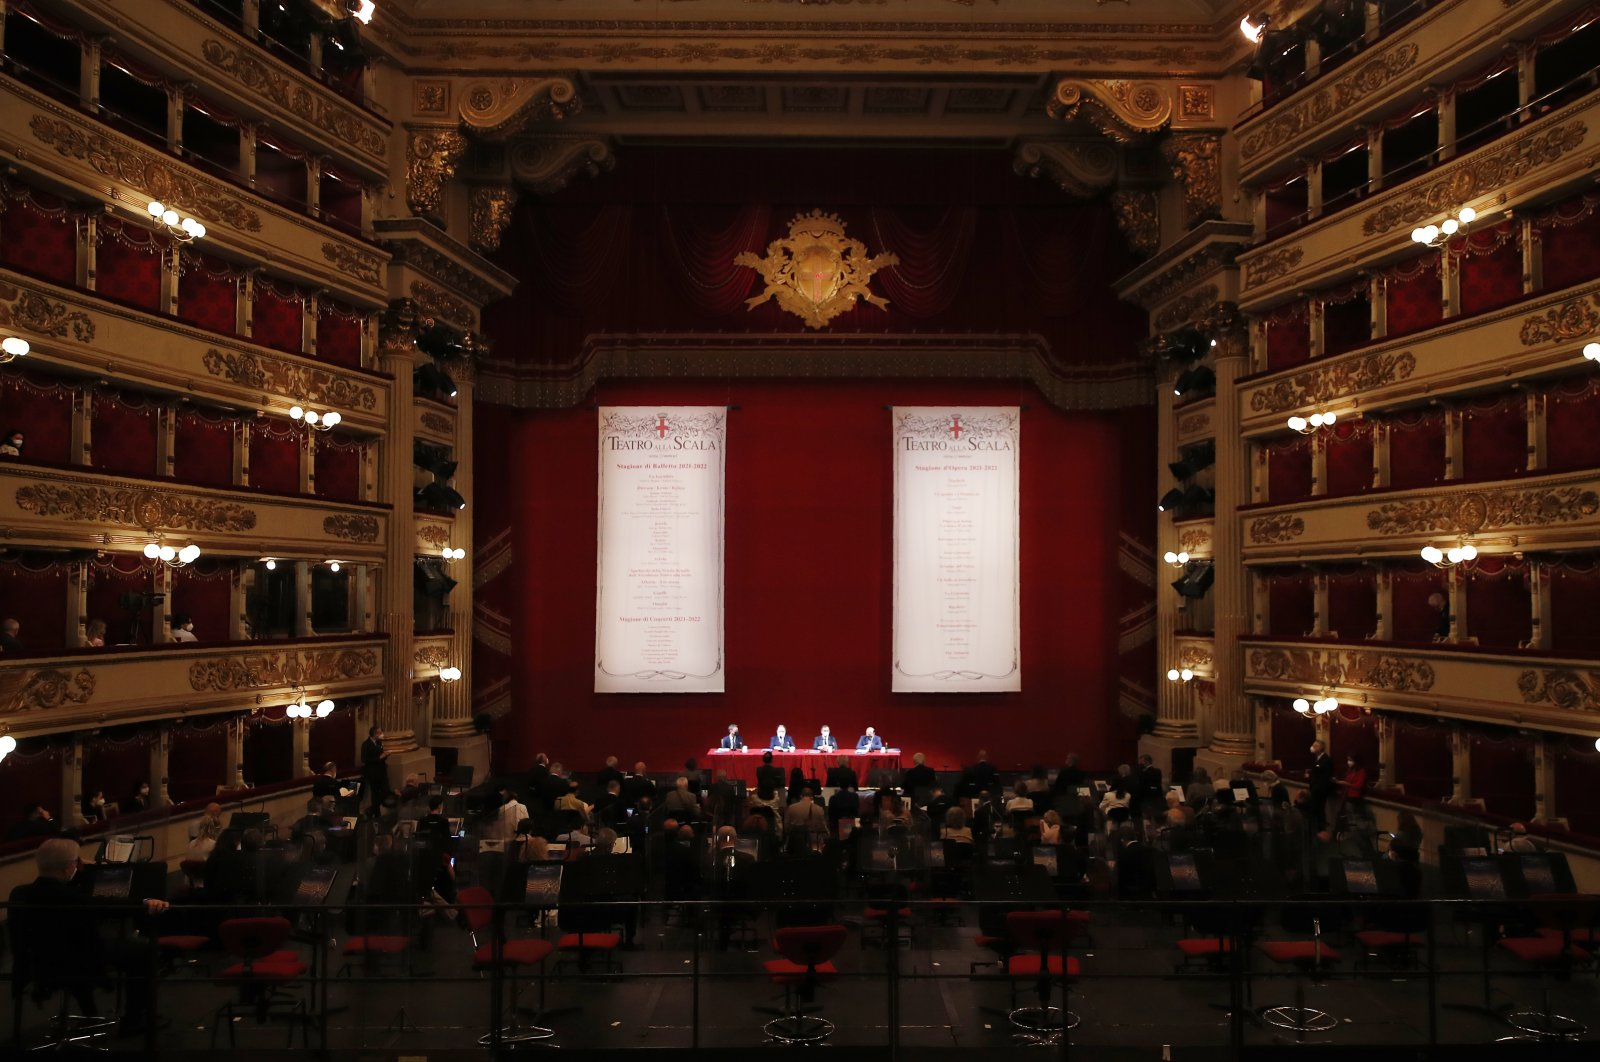 A press conference is delivered at the Milan La Scala opera house to present the theater's 2021/2022 season, in Milan, Italy, May 31, 2021. (AP Photo)